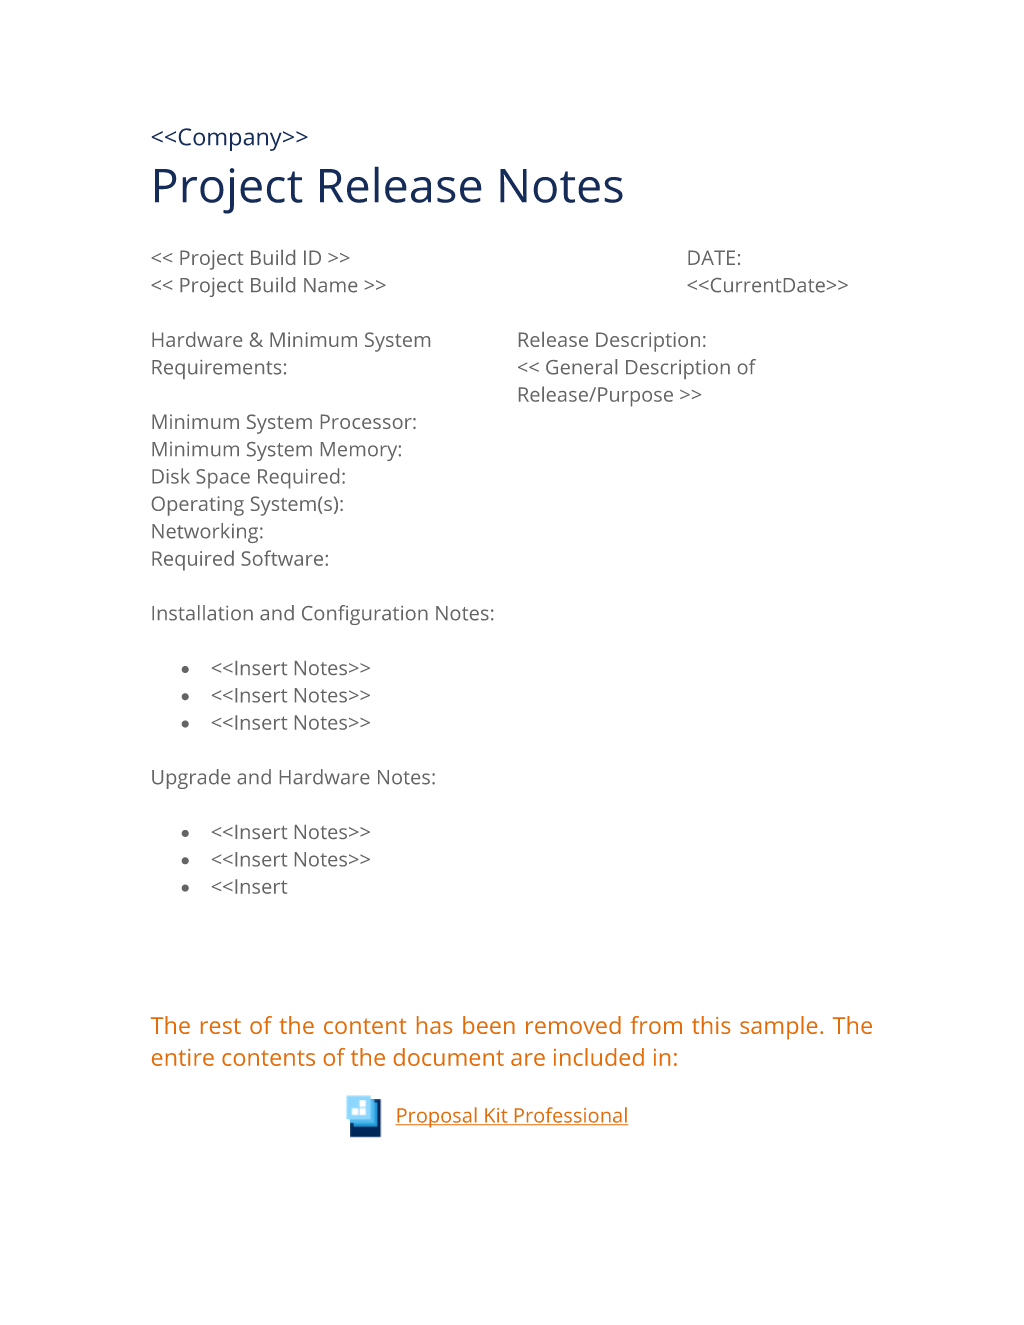 Project Release Notes Worksheet